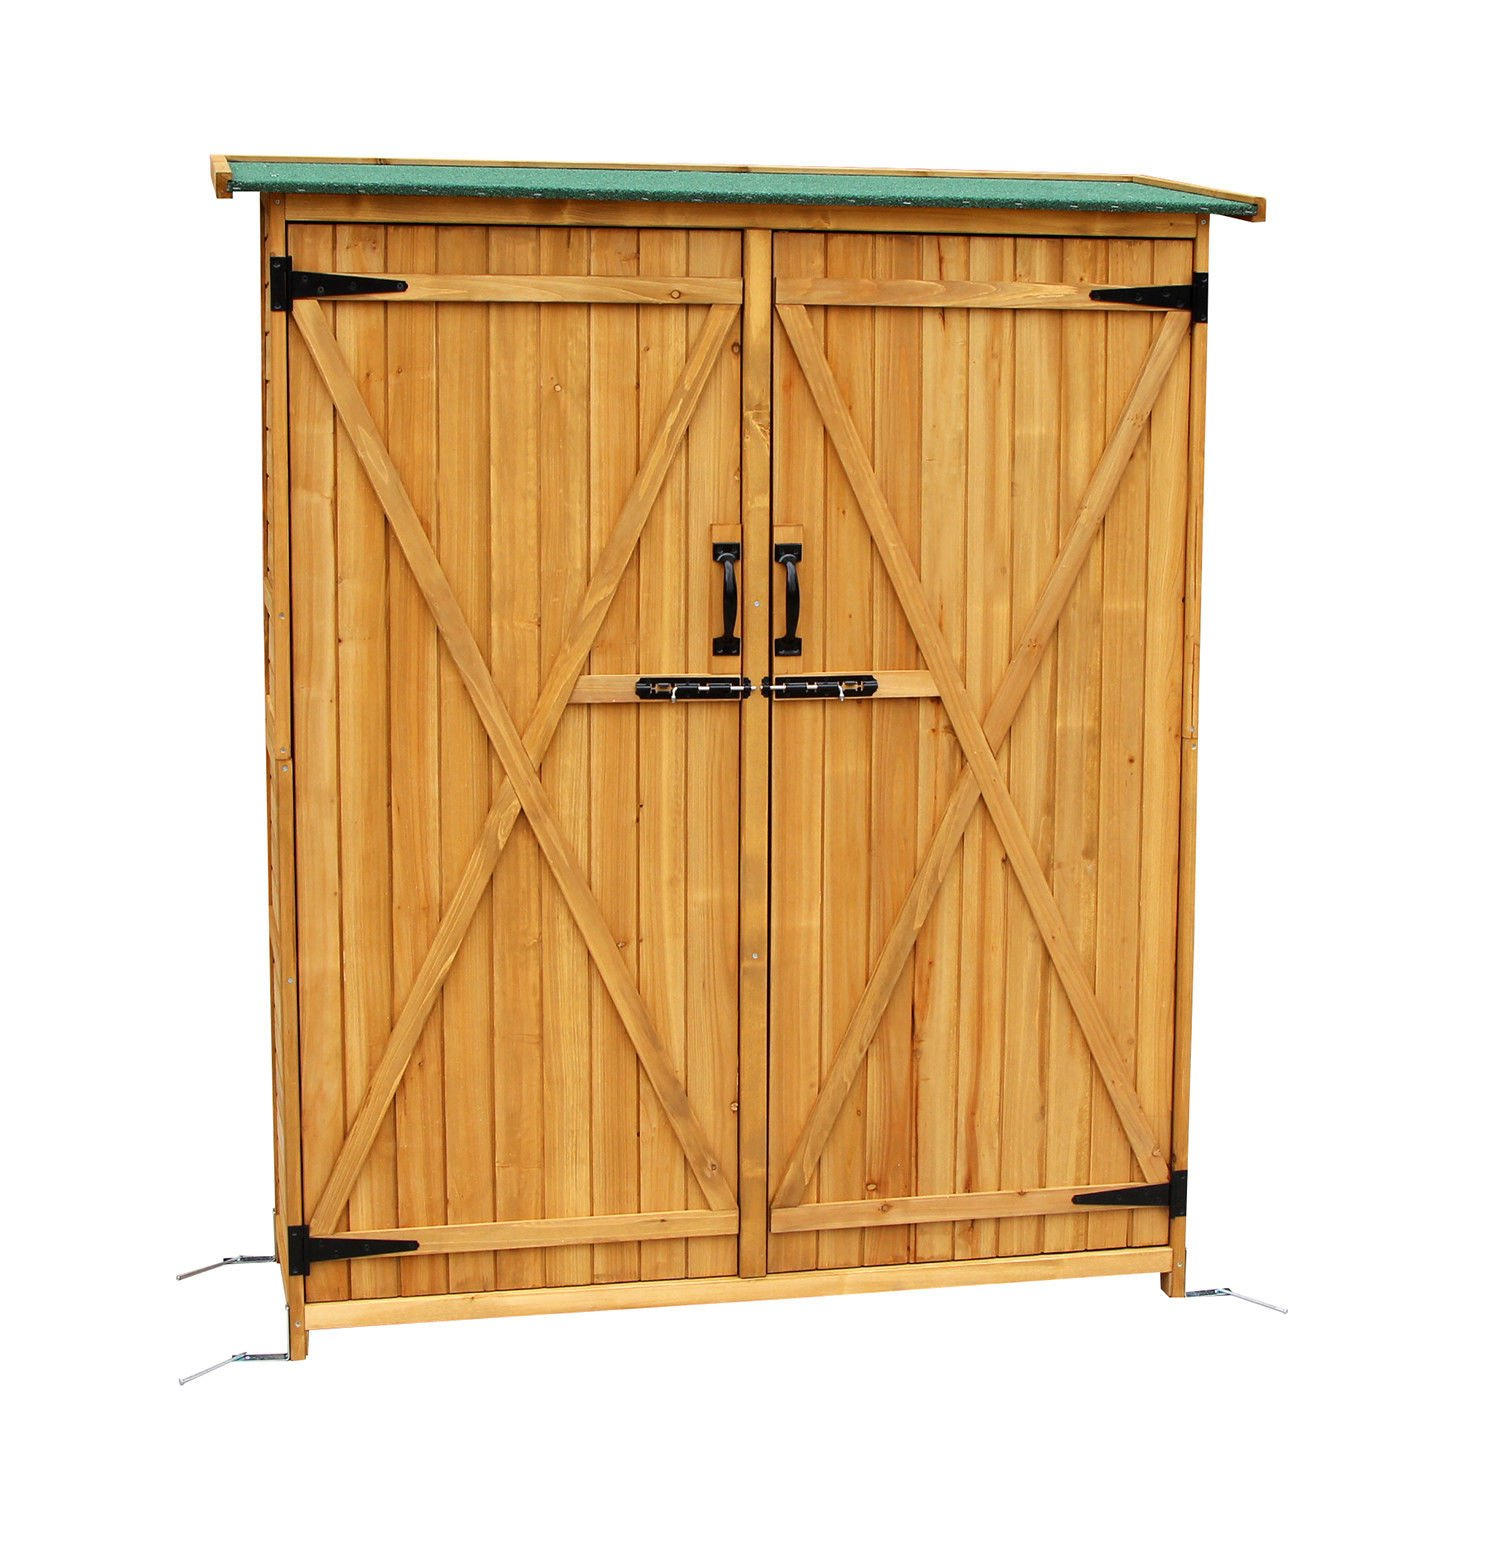 Outdoor Wooden Storage Shed Utility Tools Organizer Garden Lawn w/ Lockable Double Doors 1400